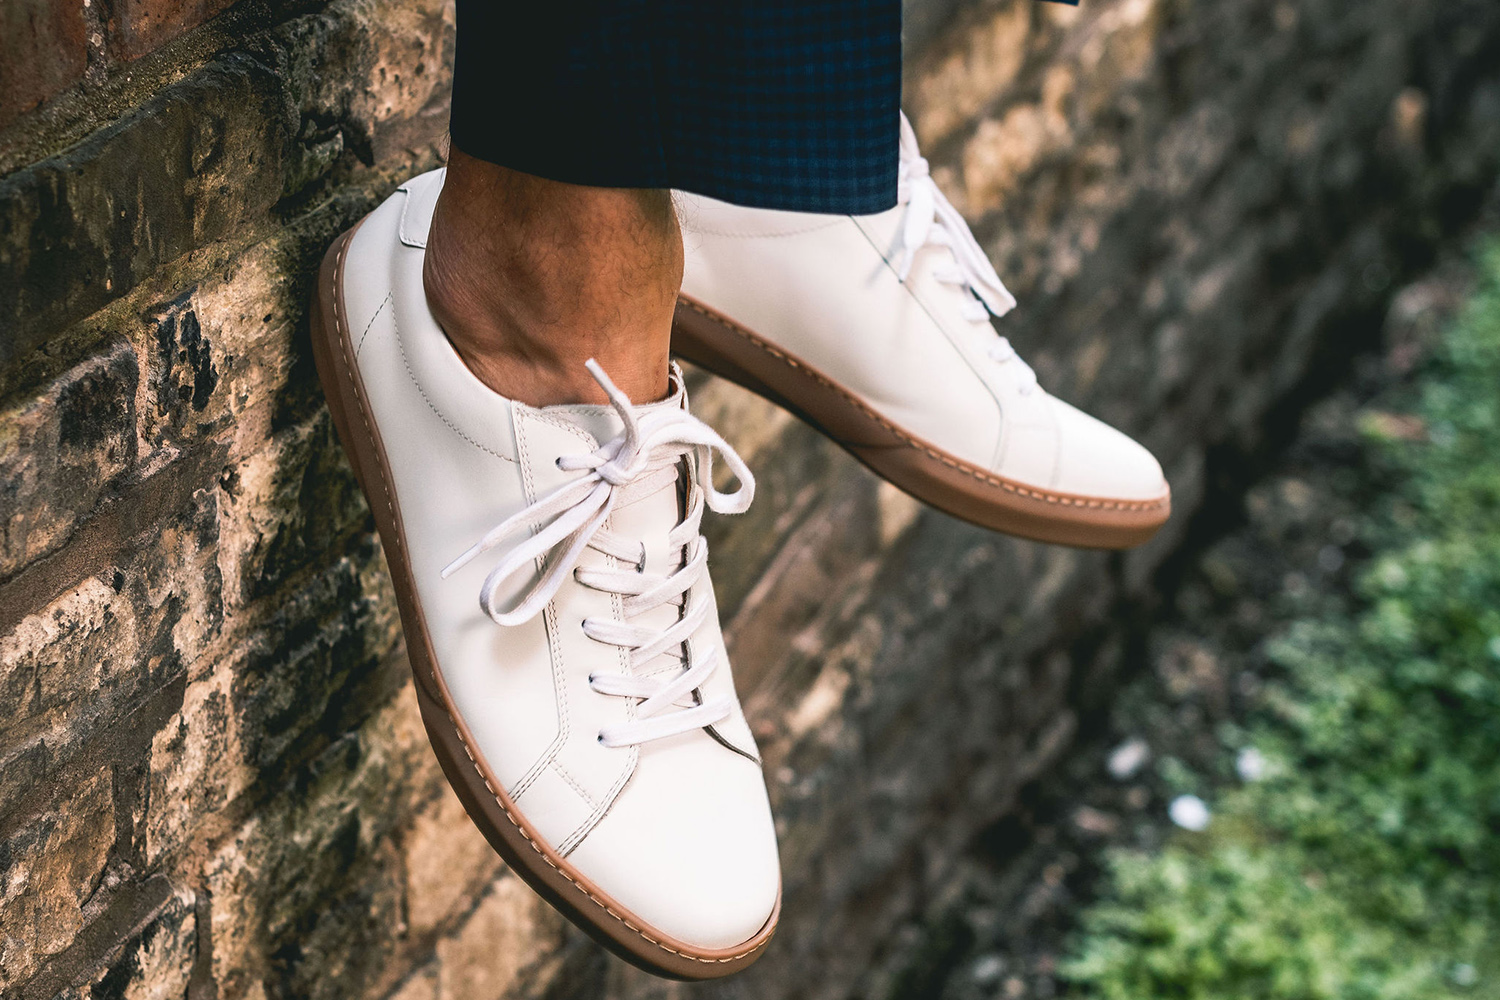 Why Moral Code Footwear Should Be Your Next Pair of Shoes